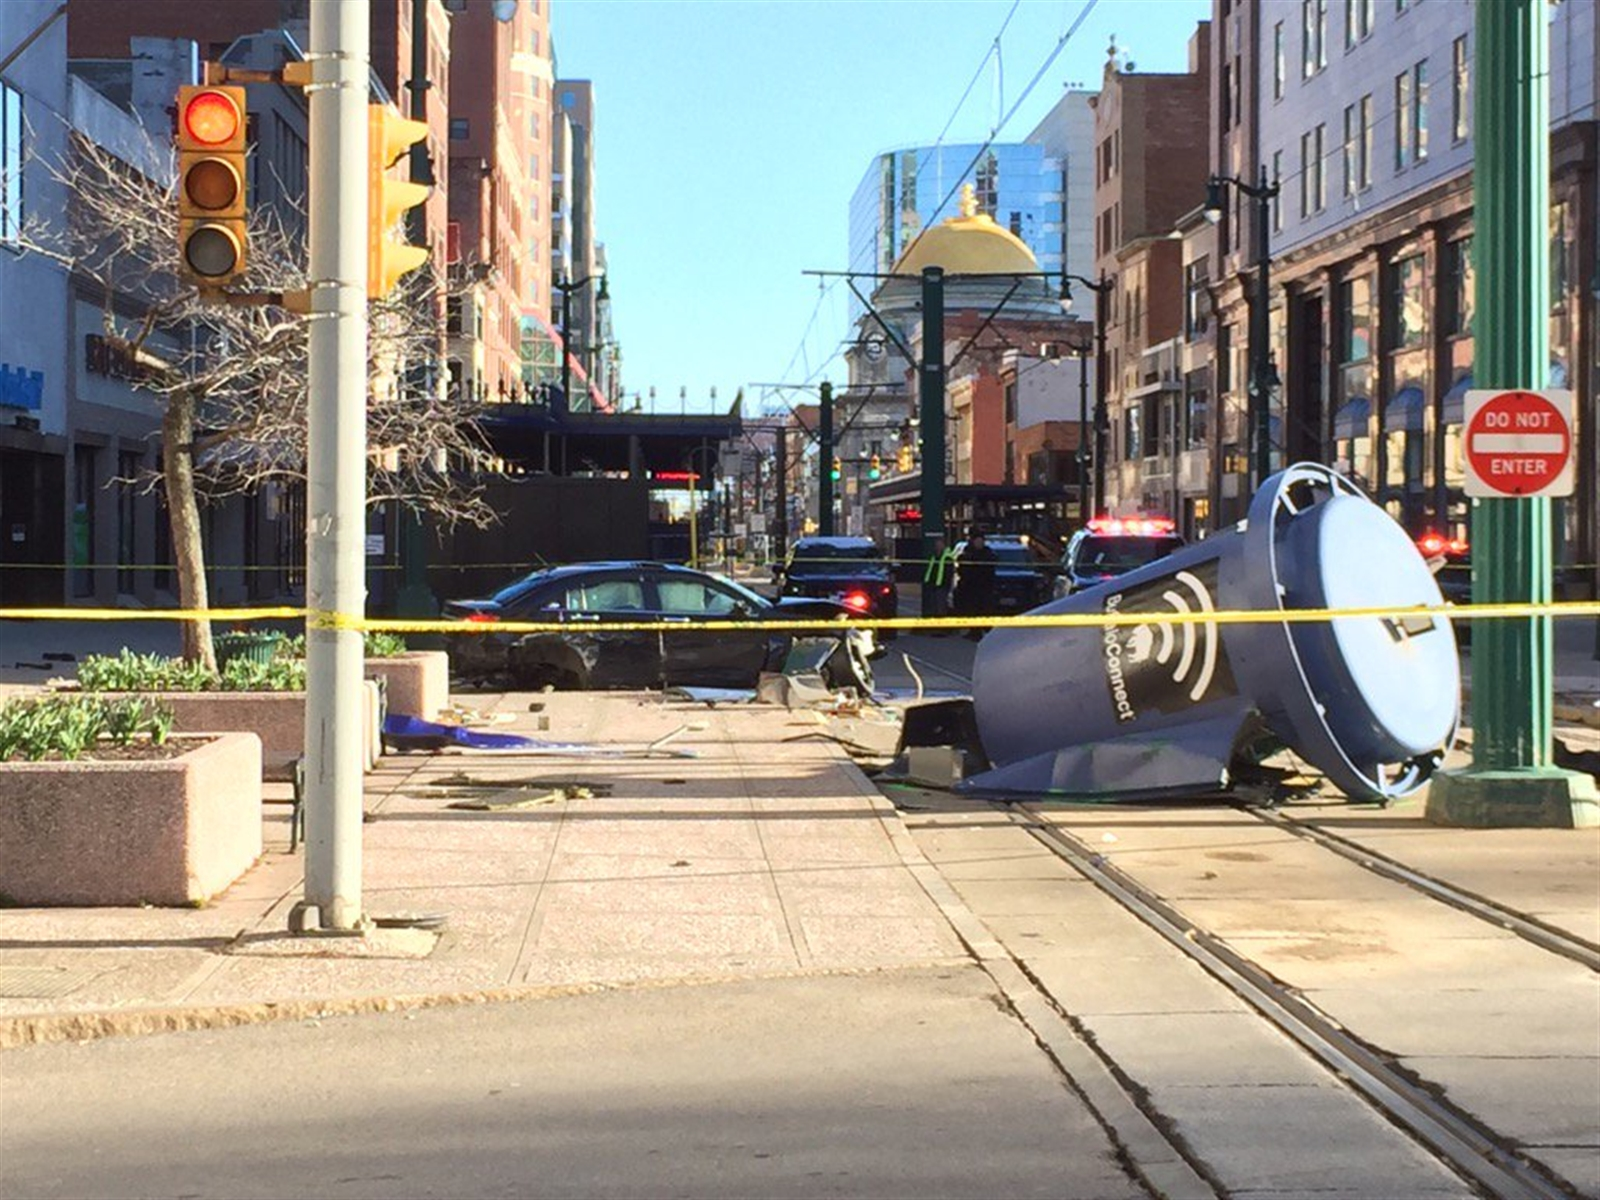 Scene at Main and Court where a stolen car crashed Saturday around 8 a.m., NFTA police said.